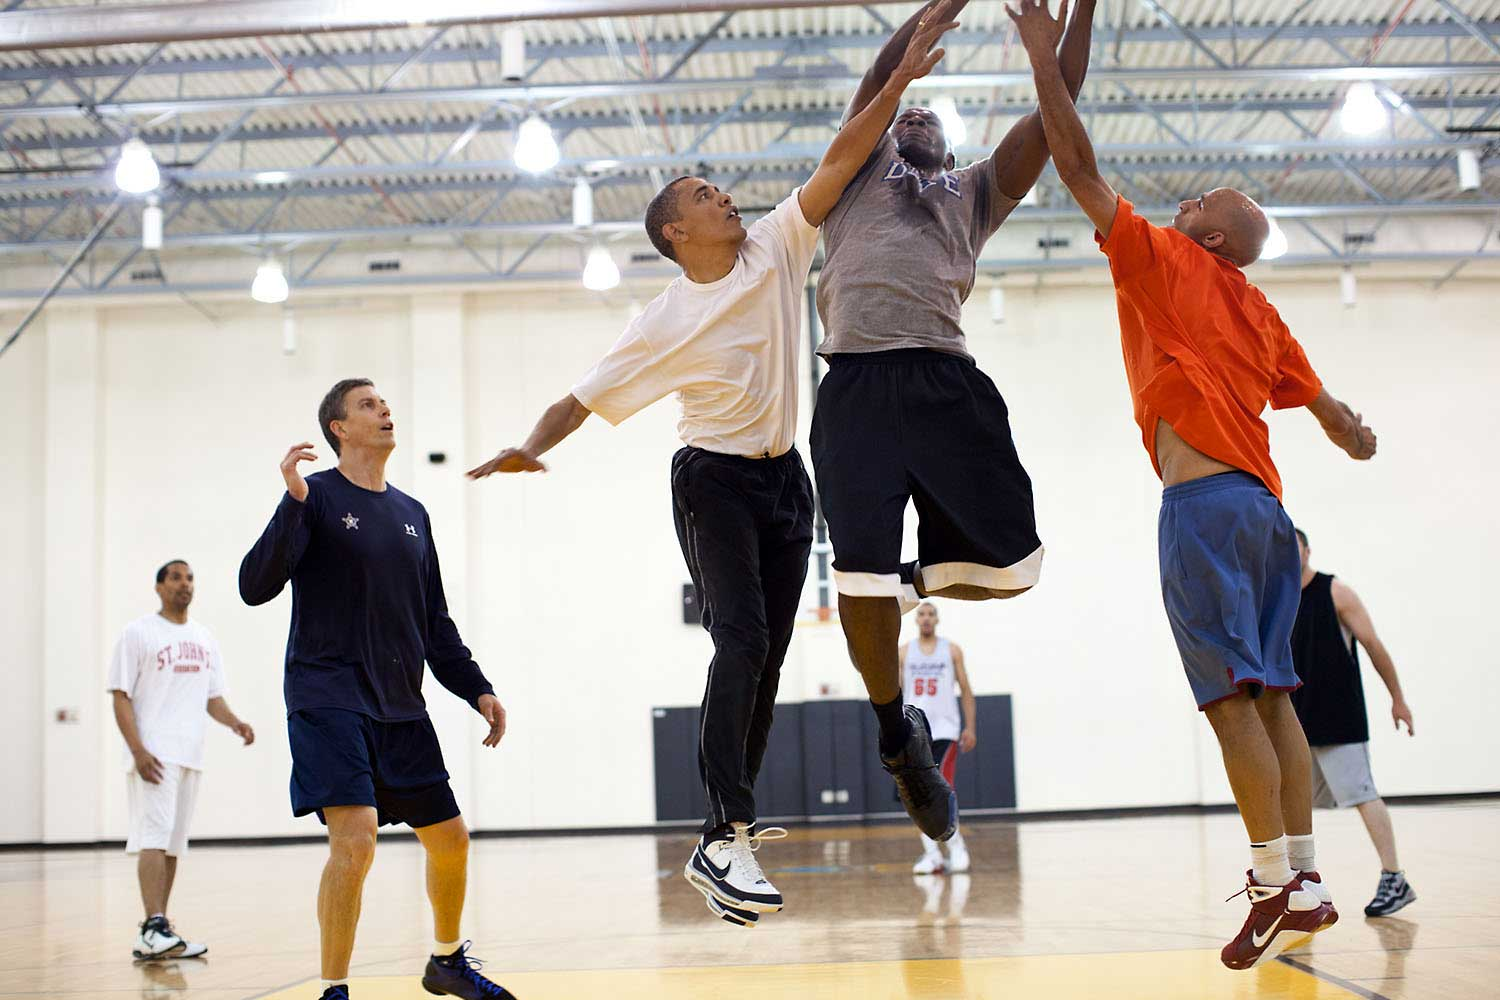 President Obama tries to block a layup shot by his former personal aide, Reggie Love, at Fort McNair in Washington, D.C., May 16, 2010.